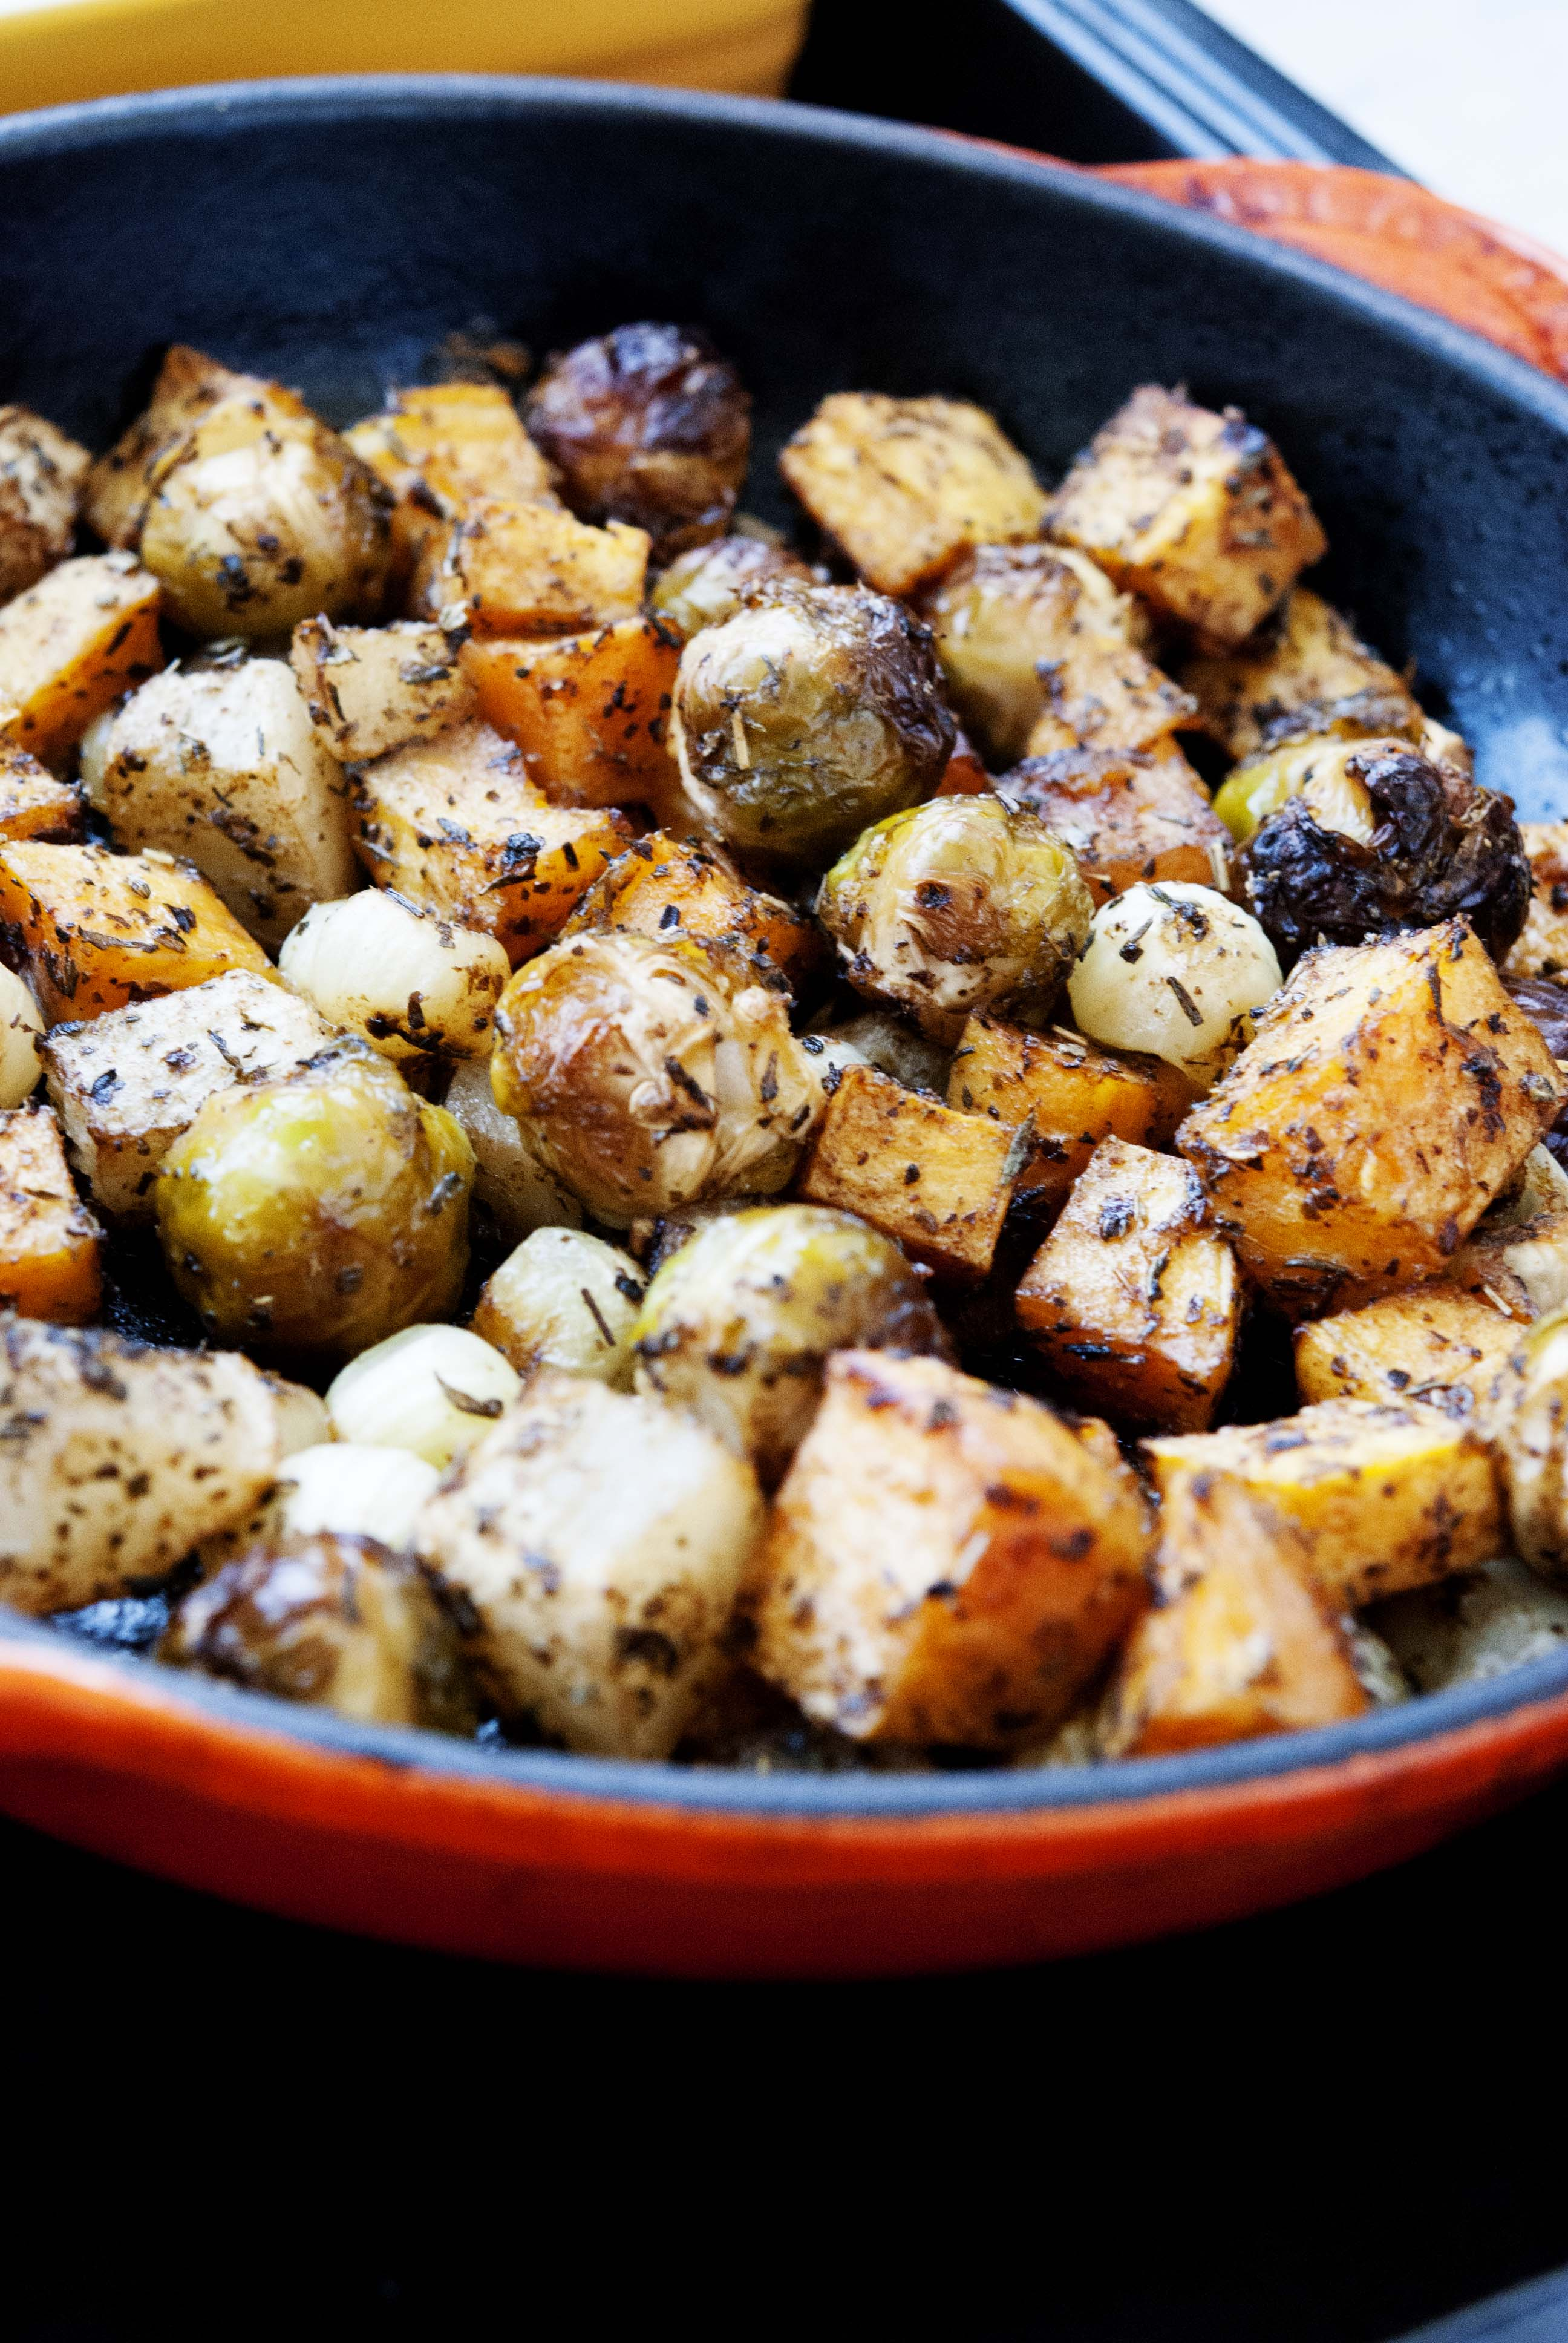 roasted-vegetables_expatcucina8